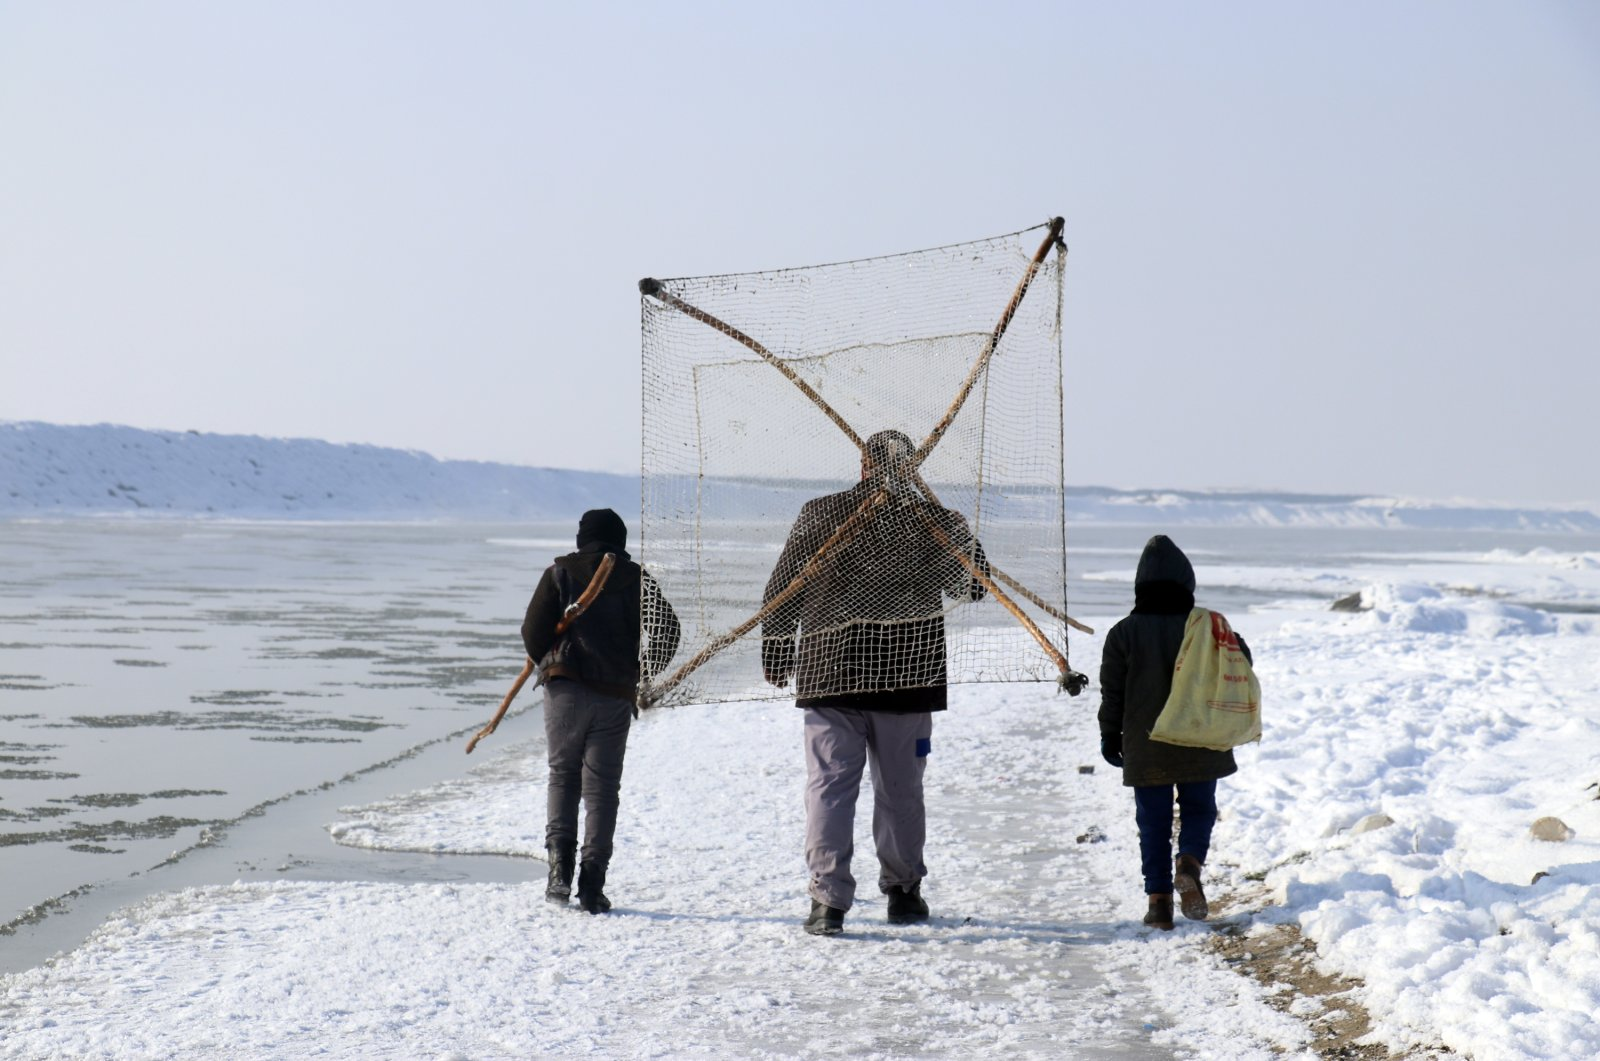 Fishermen carrying a net head out to catch what they can on the frozen Murat River in Ağri province, eastern Turkey, Jan. 12, 2021. (AA Photo)